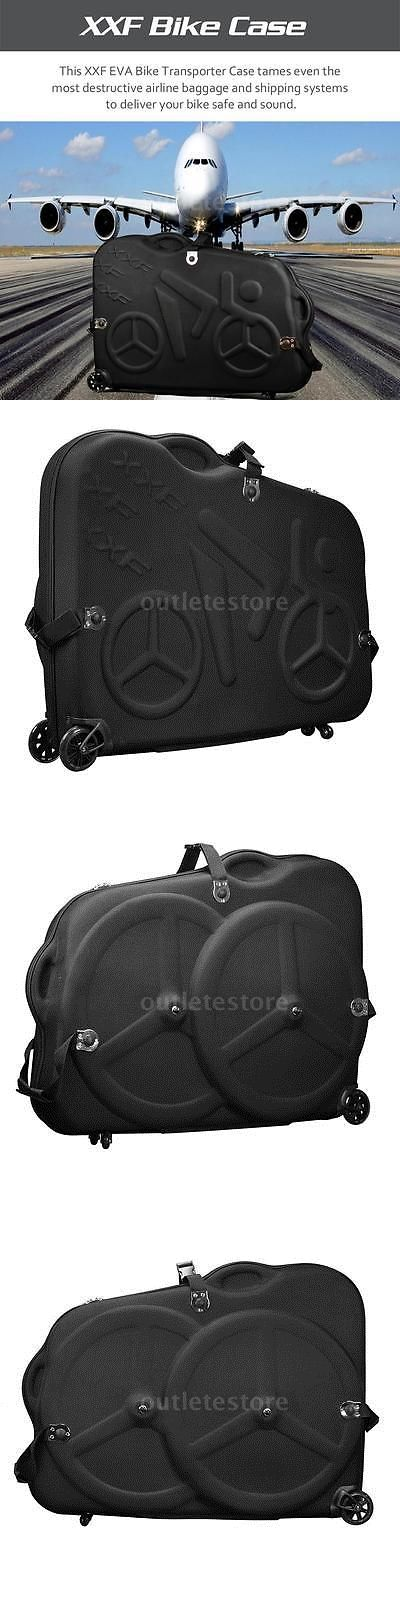 Carrier and Pannier Racks 177836: Bicycle Bike Transporter Hard Case Racing Mountain Travel Vehicle Box Hm V8d1 -> BUY IT NOW ONLY: $272 on eBay!